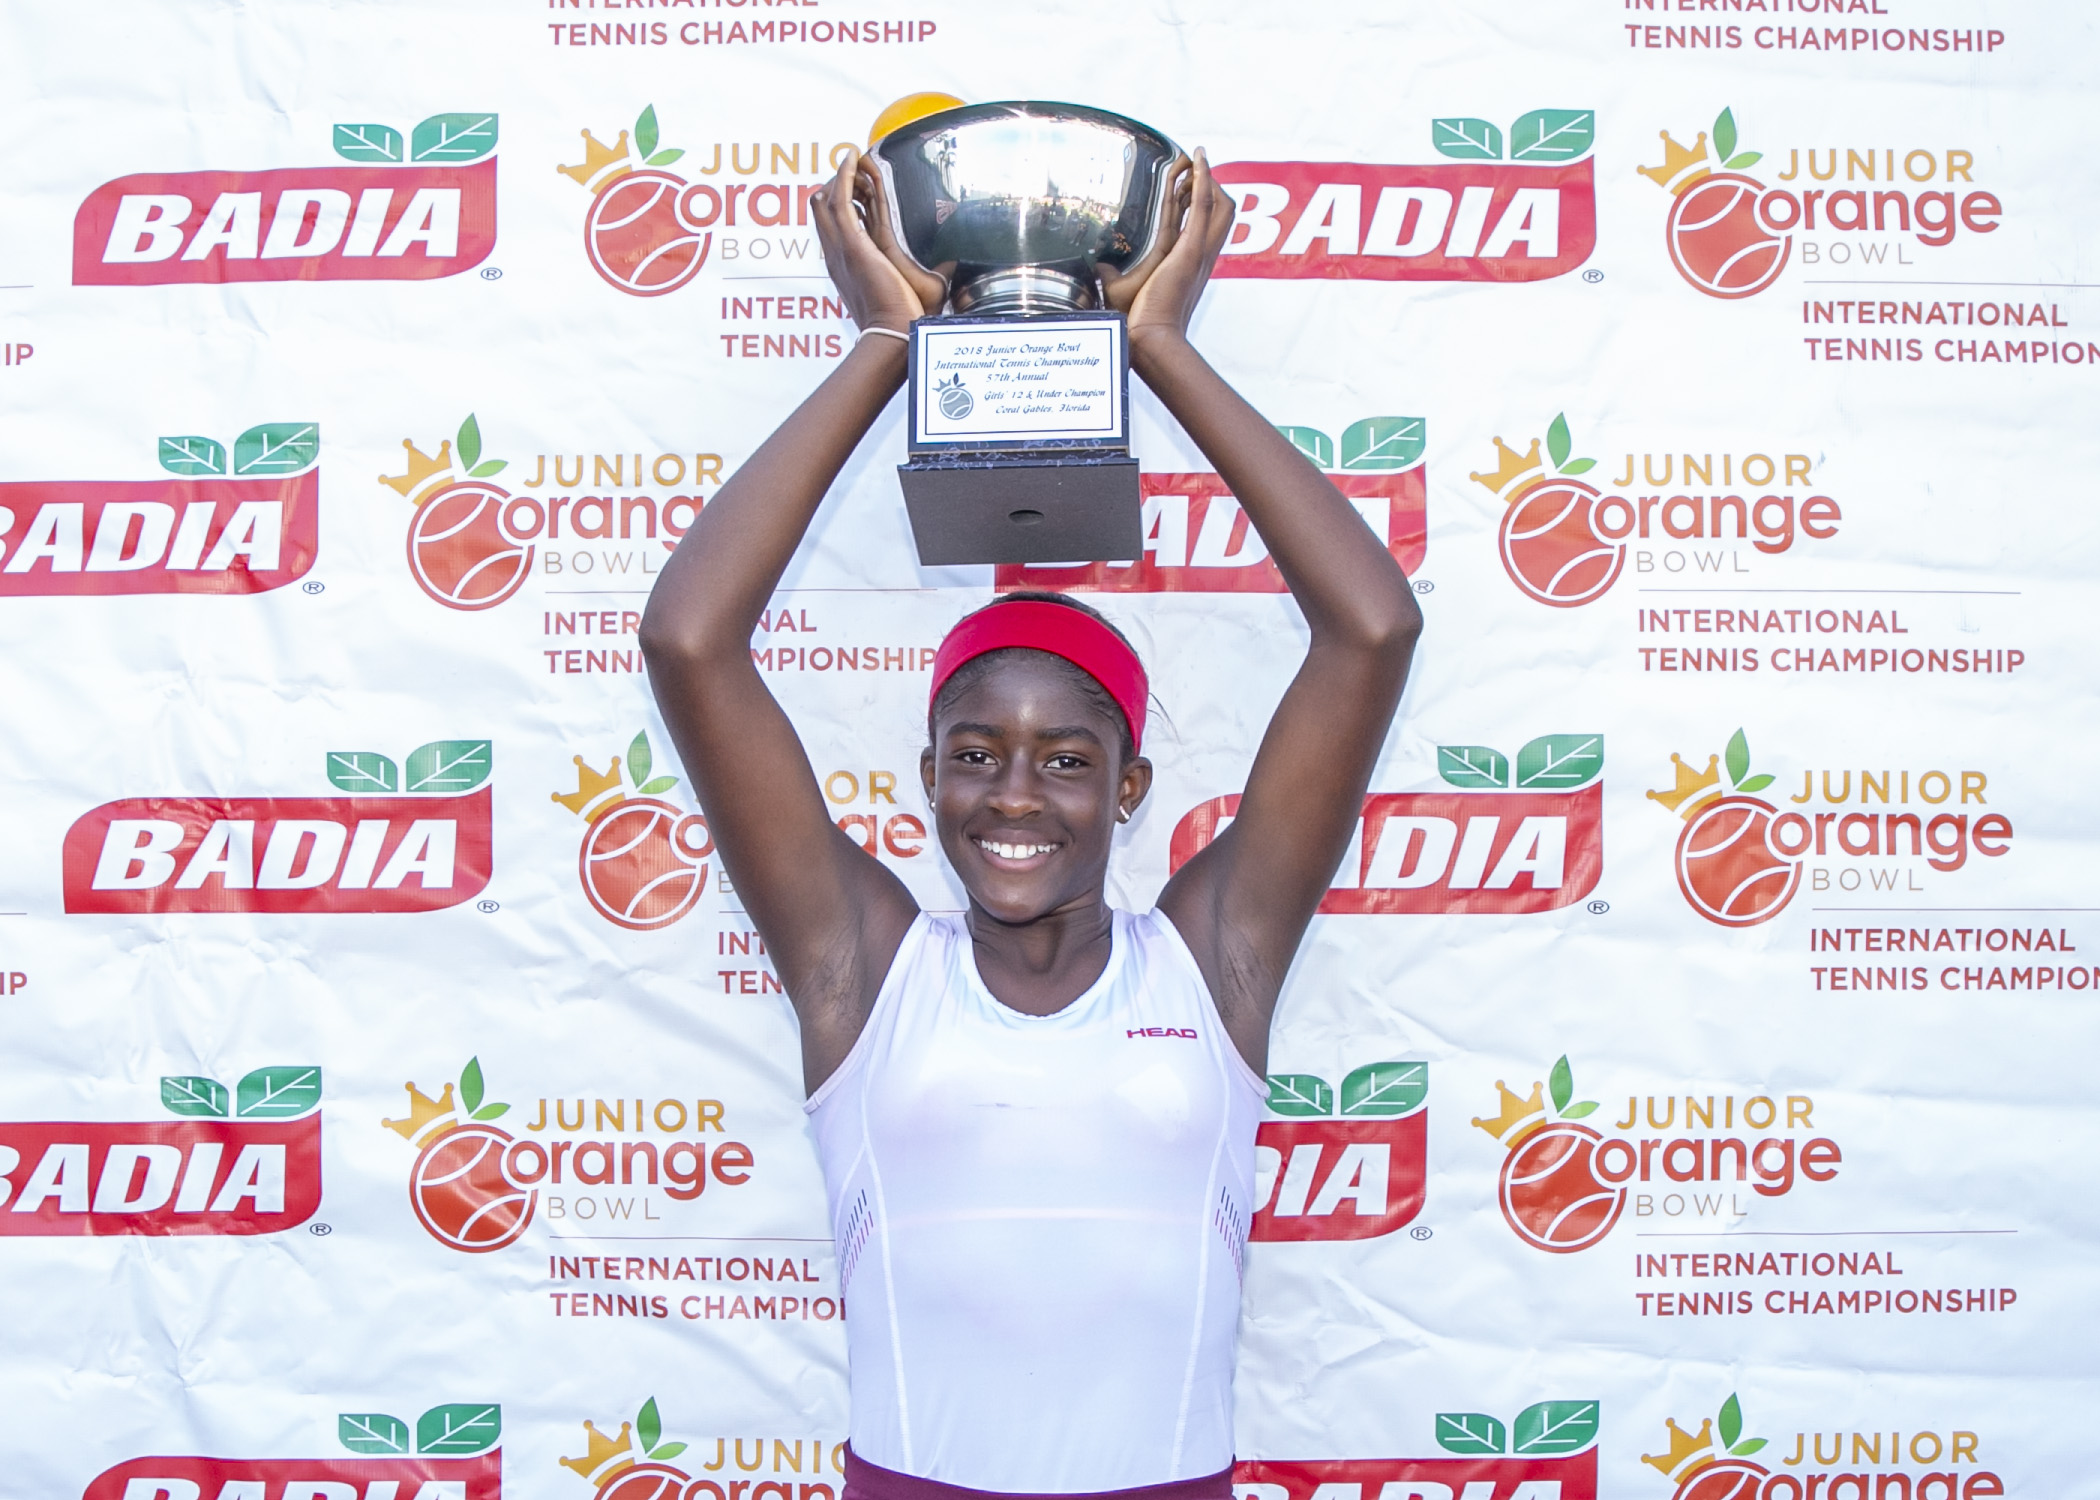 Junior Orange Bowl International Tennis Championship